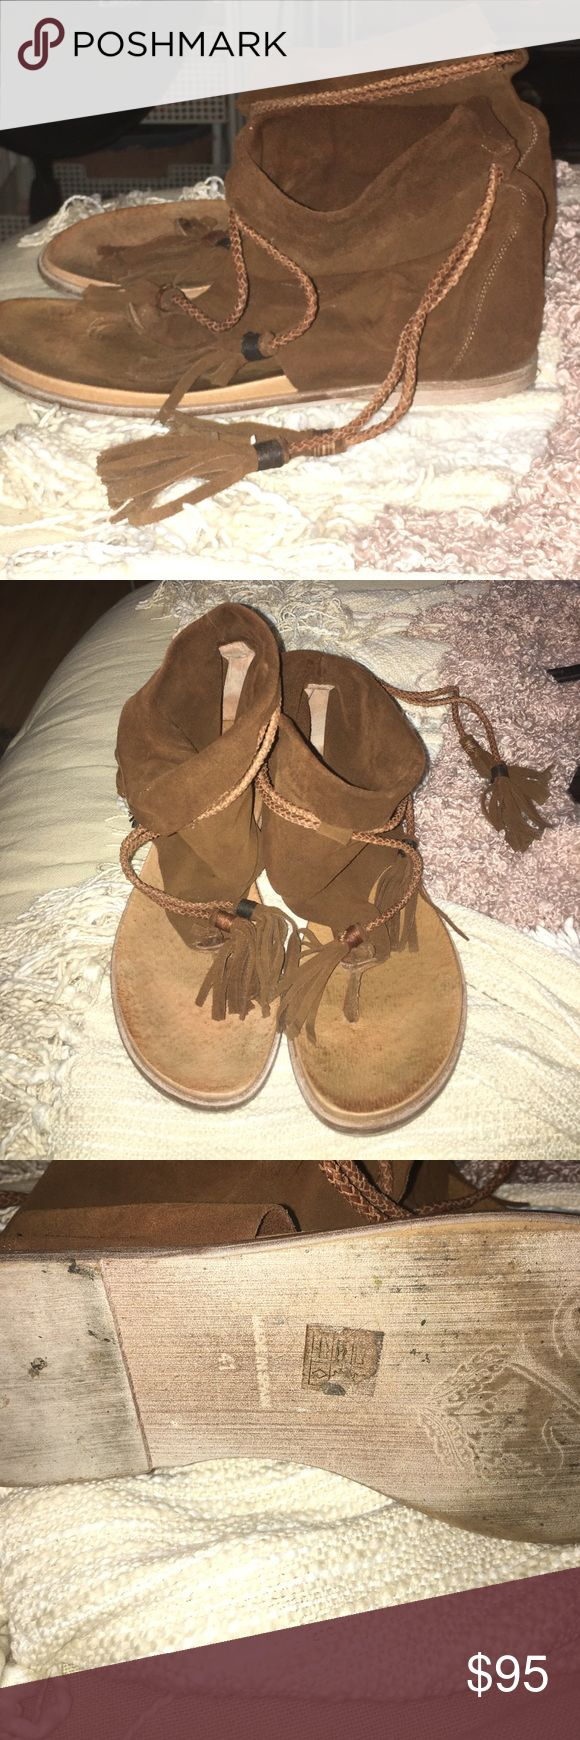 Free People Harlow Sandal Size 41 (10.5) Free People's Harlow Boot Sandal in brown rust Free People Shoes Sandals